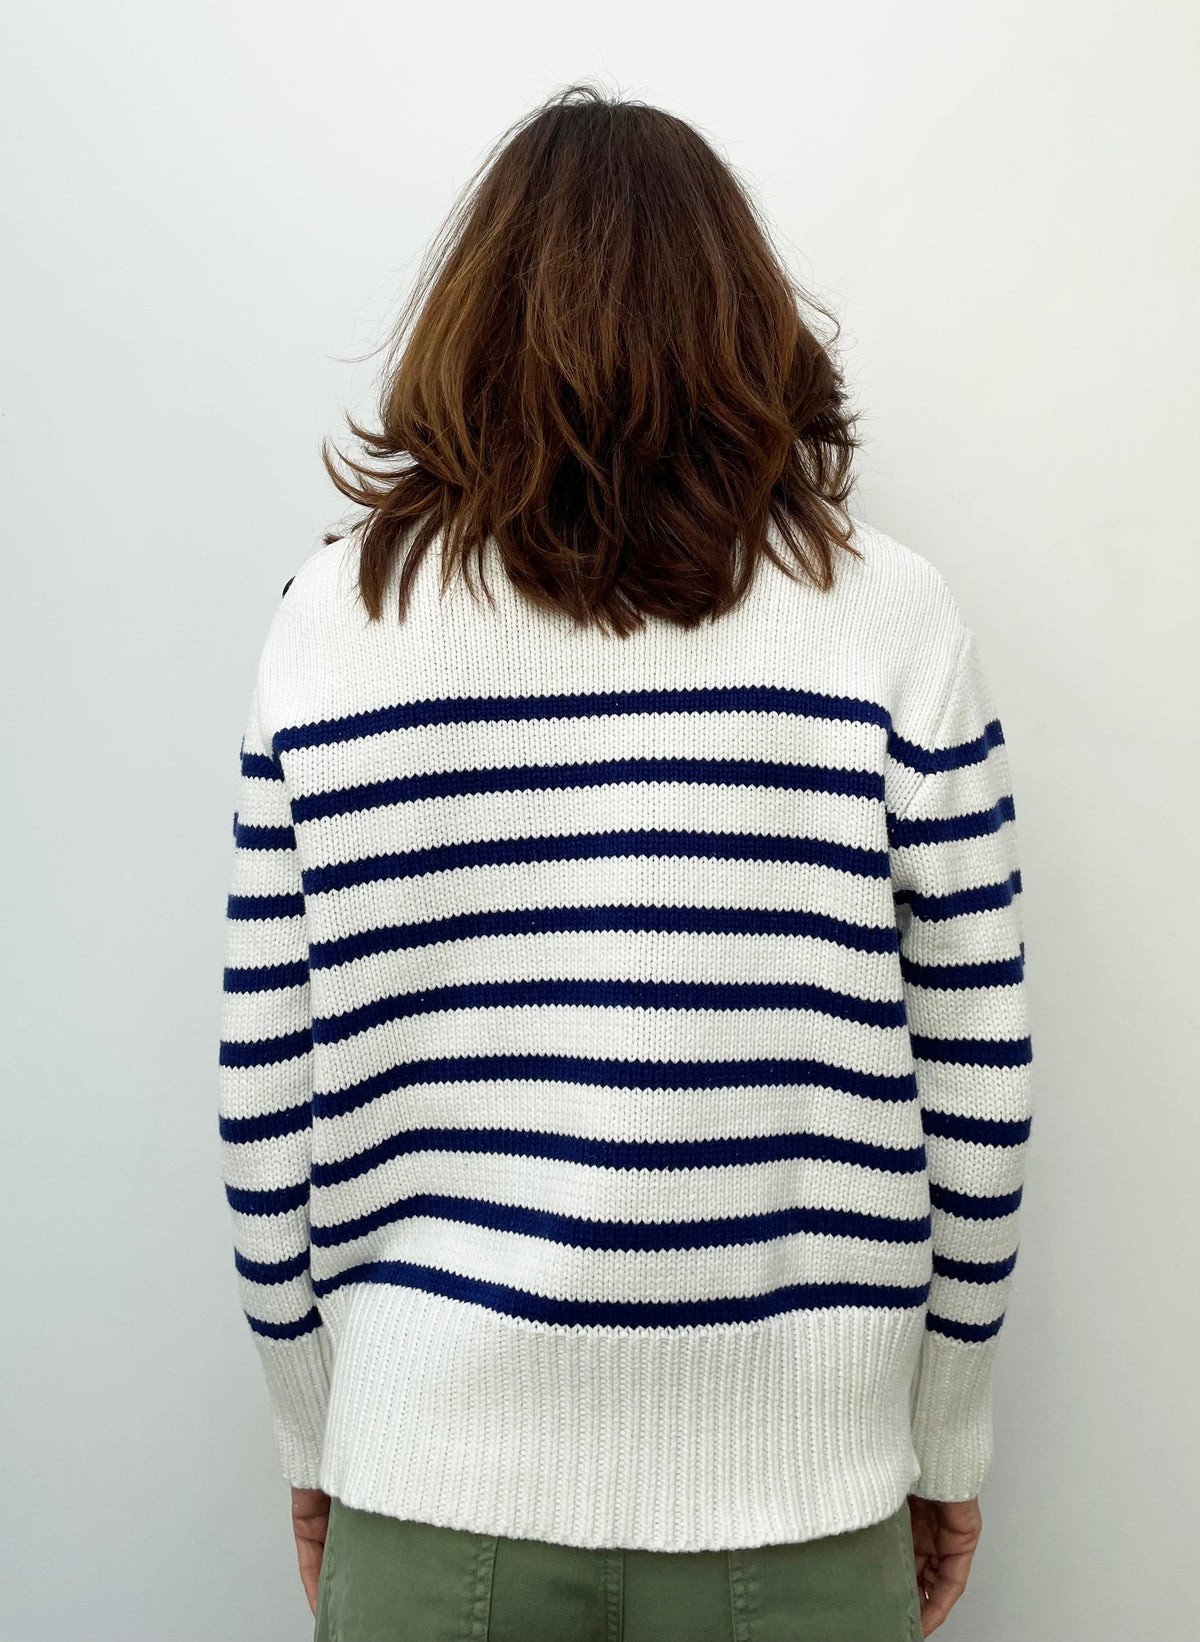 FIVE POE2111 Striped Top in Navy